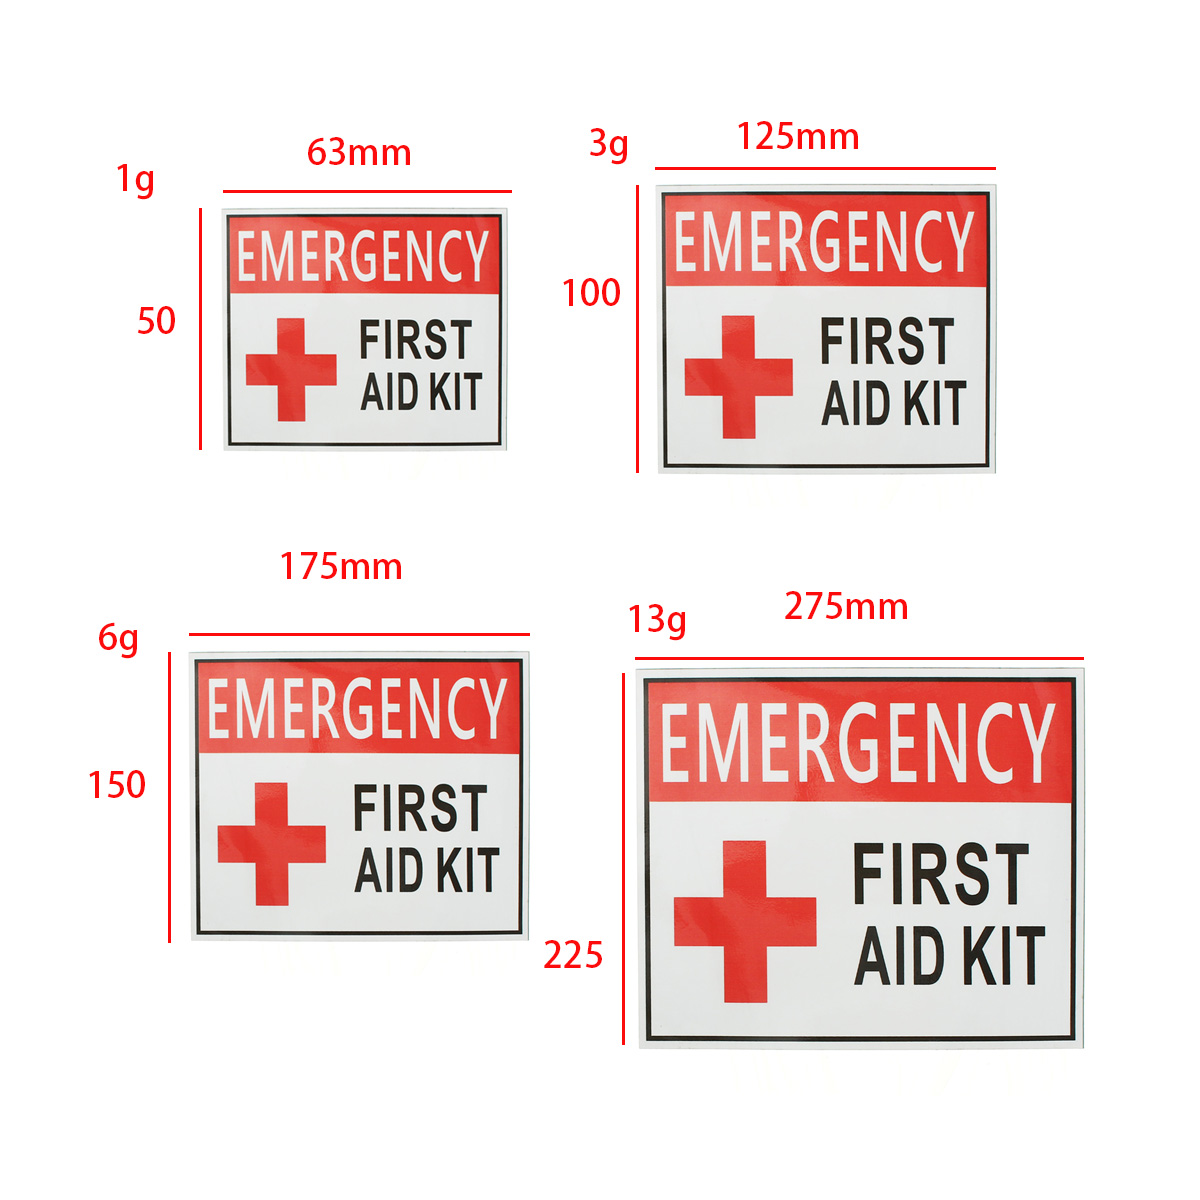 4 Size EMERGENCY FIRST AID KIT Vinyl Sticker Label Signs Red Cross Health Safety Home Living School Outdoor MATCC US,225*275mm color